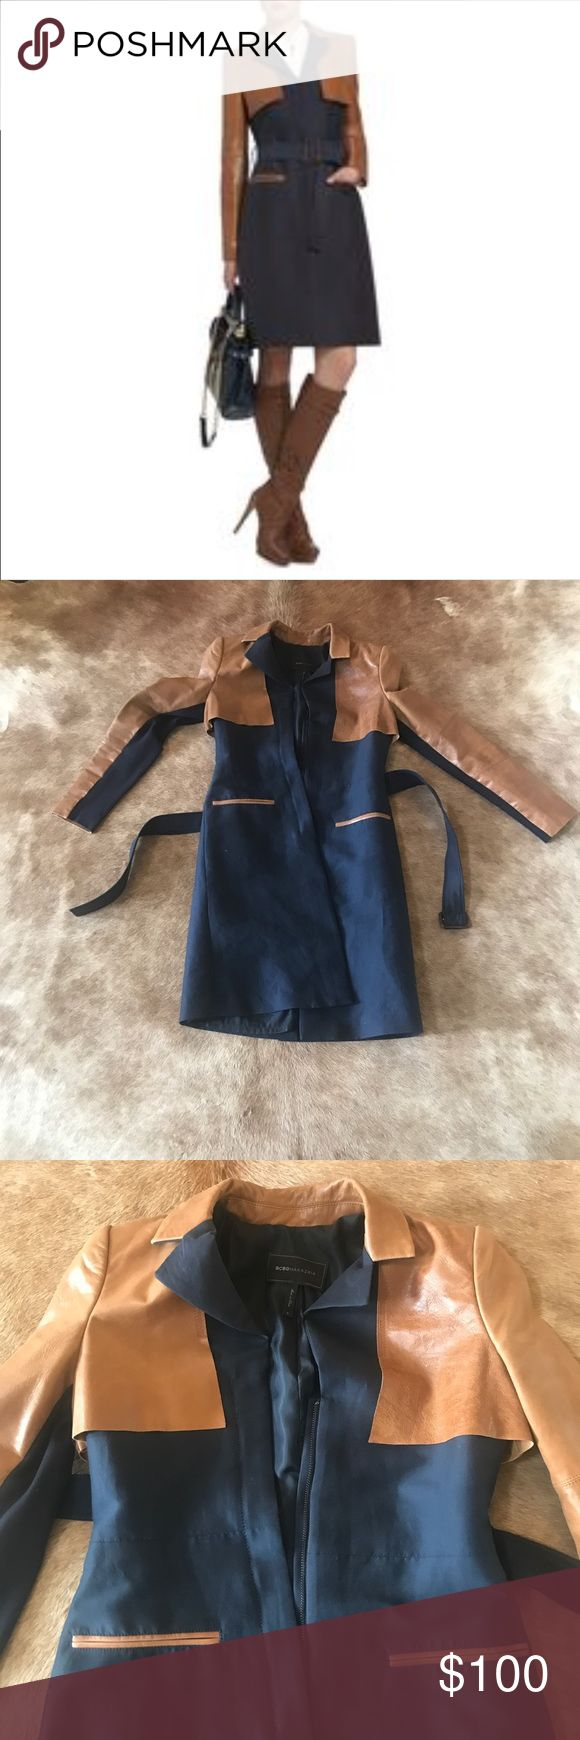 Celene leather contrast trench coat LADIES It's beautiful! My shoulders are just too muscular for it to fit me right. I wore it once. It's been just hanging in my closet mostly. One of the belt loops need a needle & thread but there's no tear. (See last pic) Great condition. Navy & leather BCBG Jackets & Coats